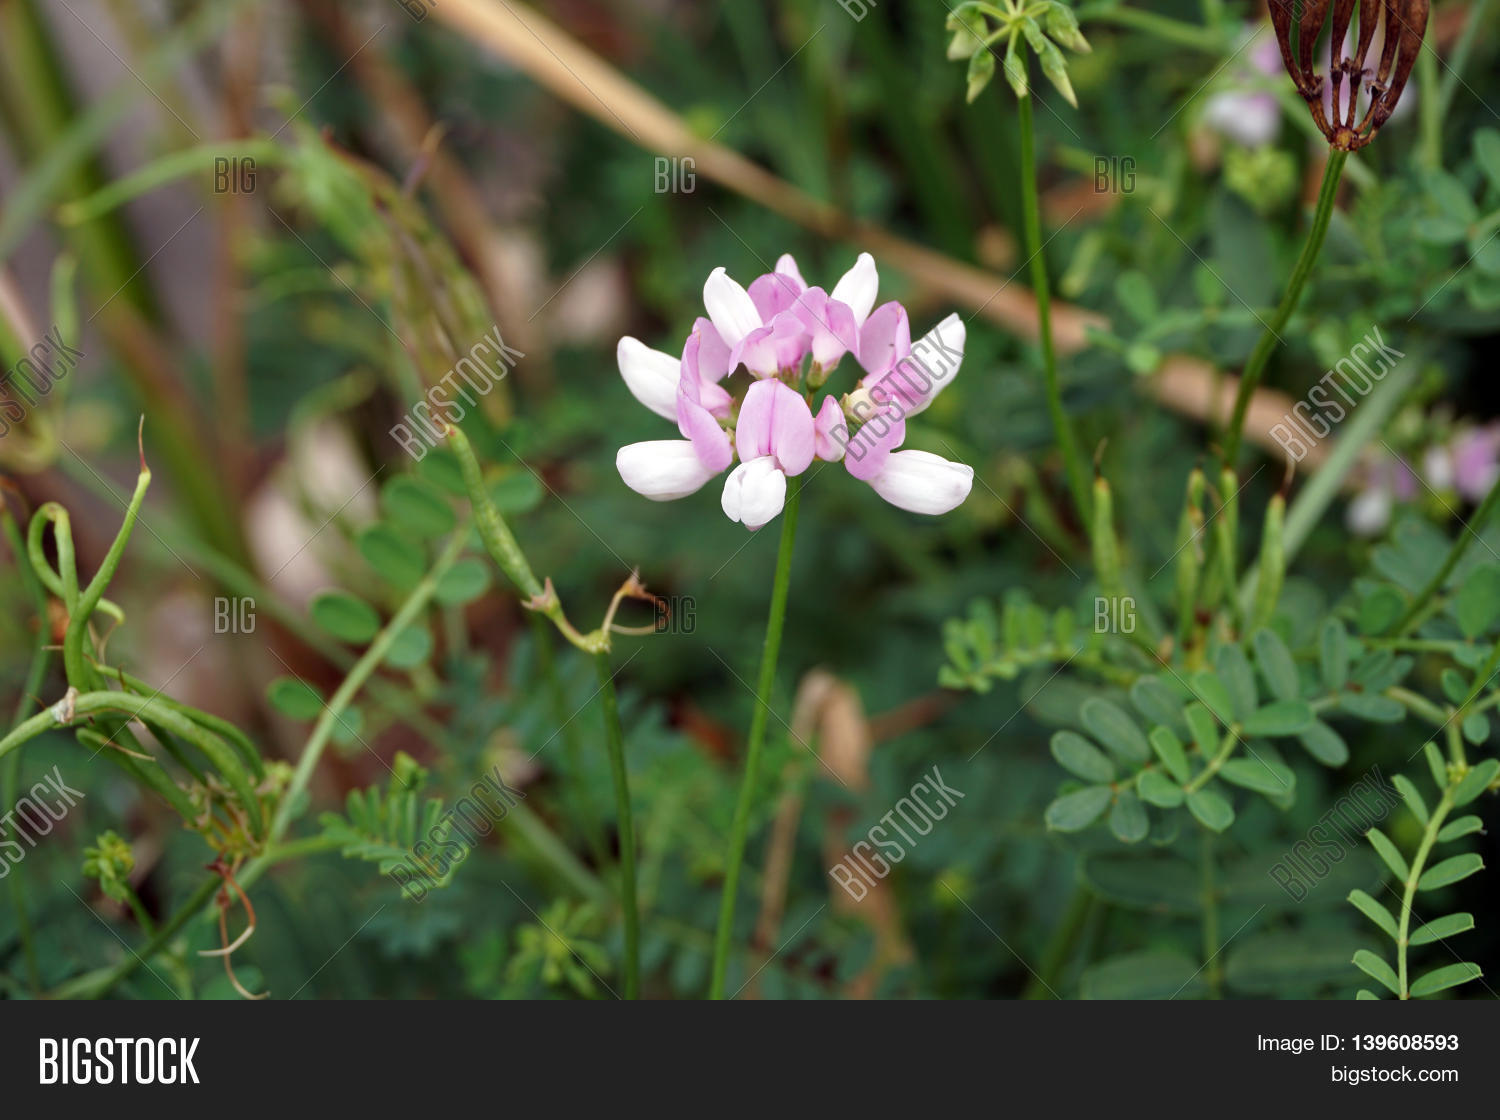 Crown vetch flower image photo free trial bigstock a crown vetch flower securigera varia blooms in a swamp in plainfield illinois izmirmasajfo